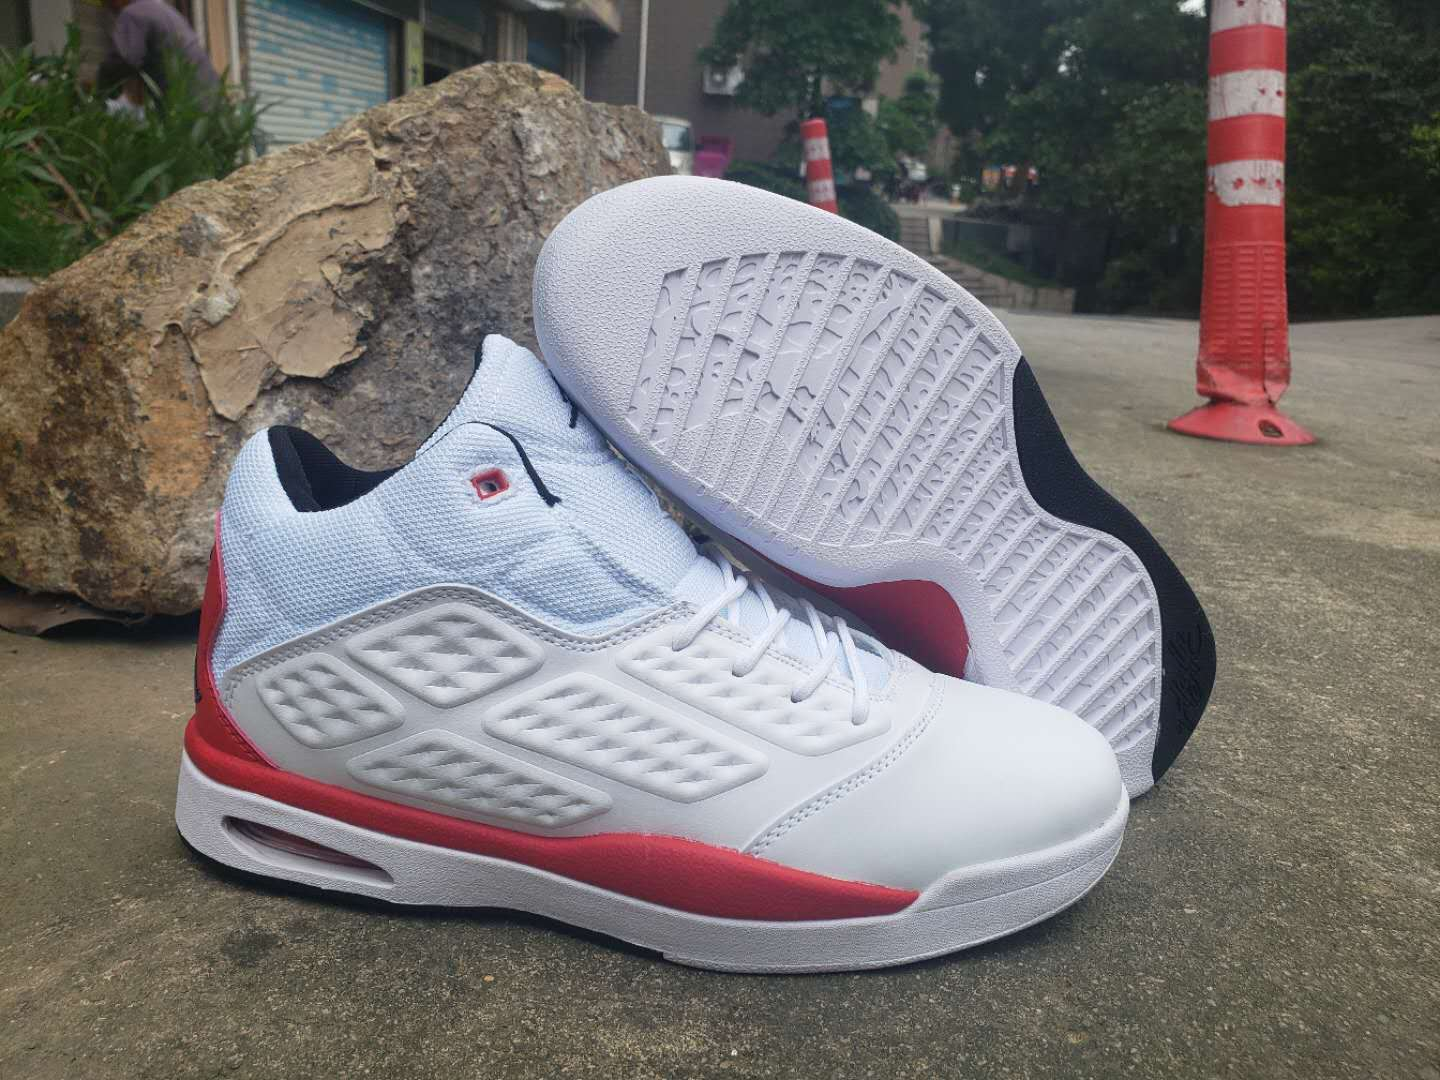 2019 Air Jordan New School White Red Shoes